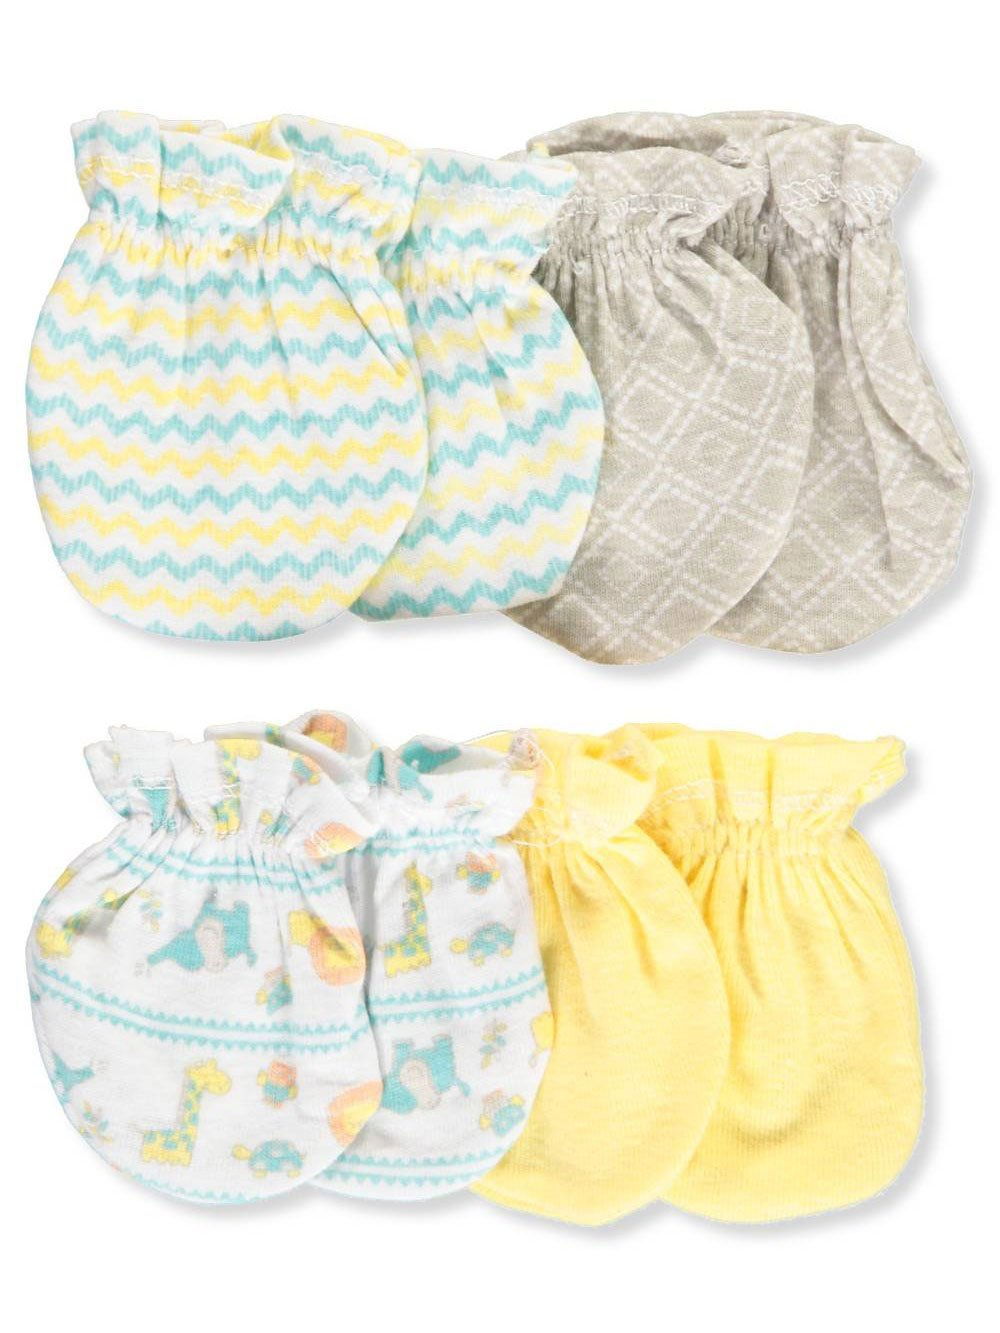 Cribmates Unisex Baby 4-Pack Scratch Mitts - yellow multi, one size